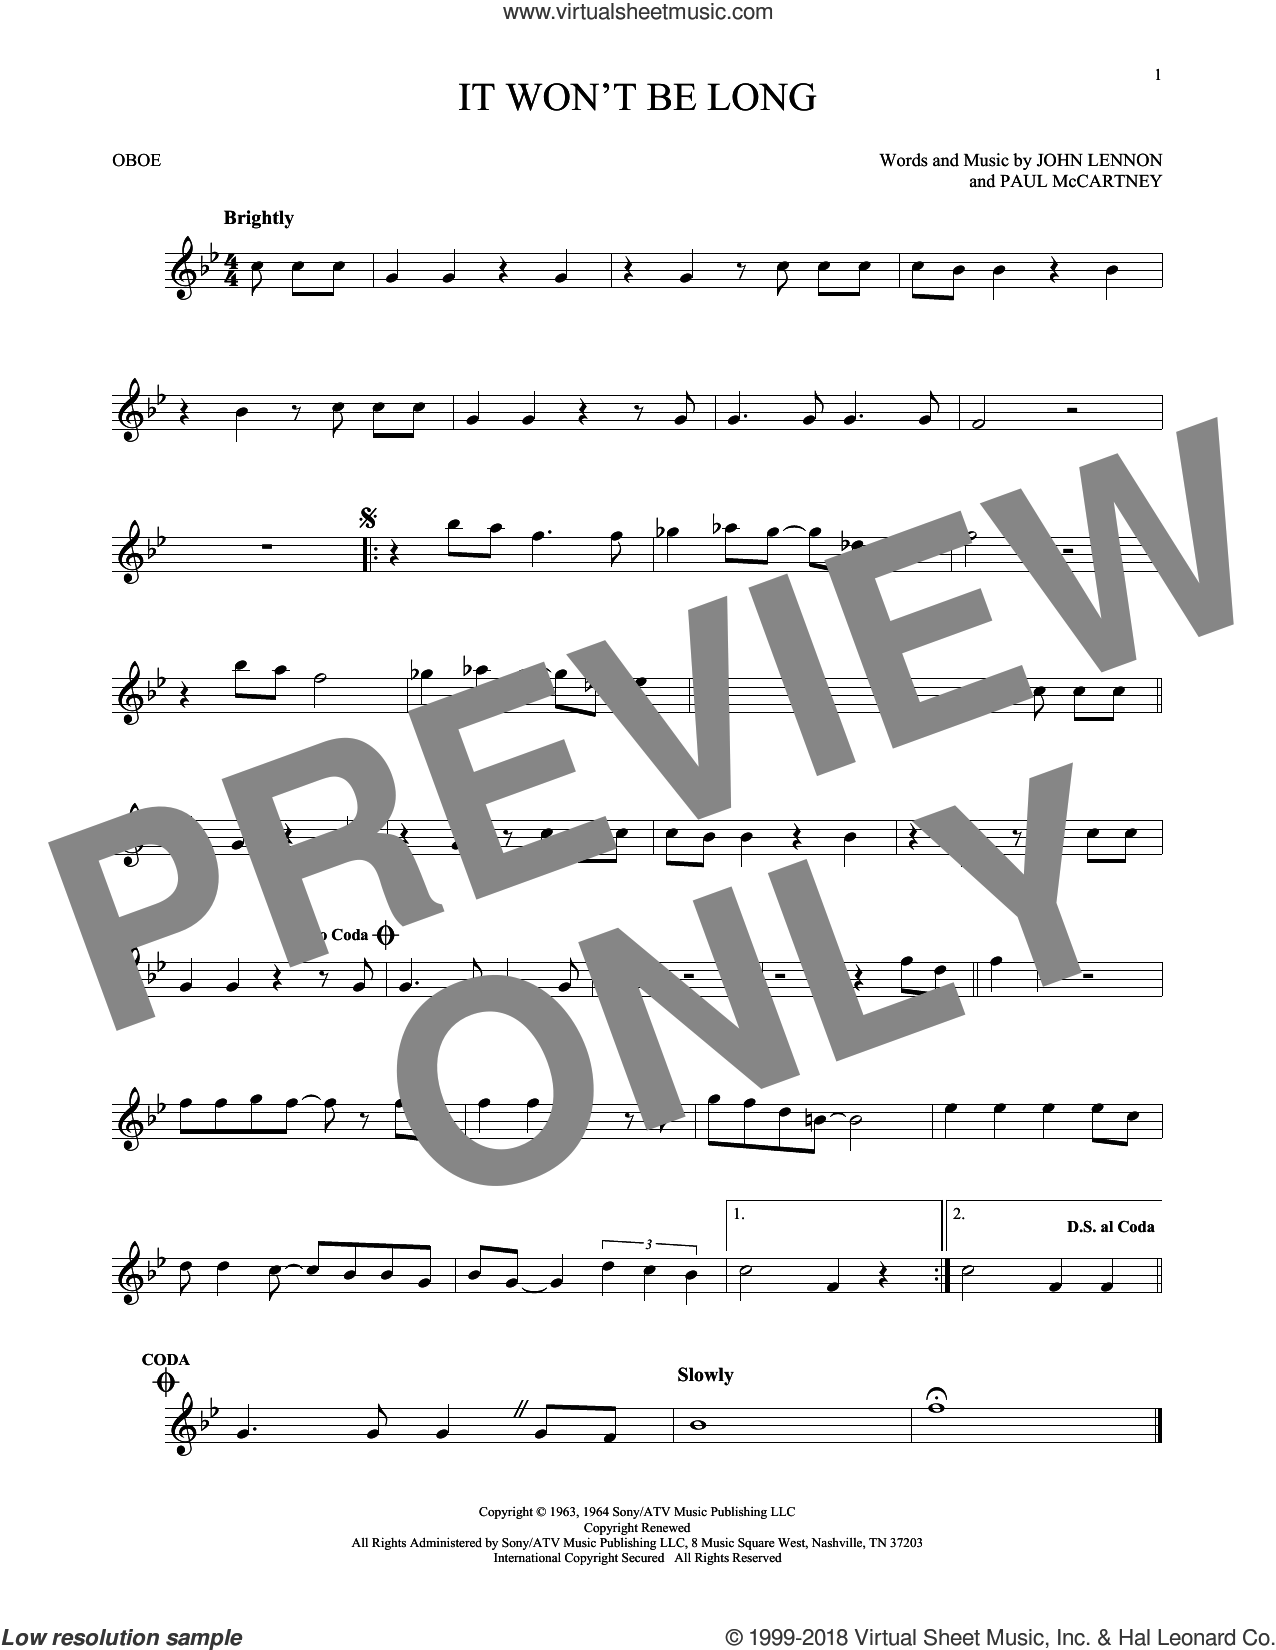 It Won't Be Long sheet music for oboe solo by The Beatles, John Lennon and Paul McCartney. Score Image Preview.